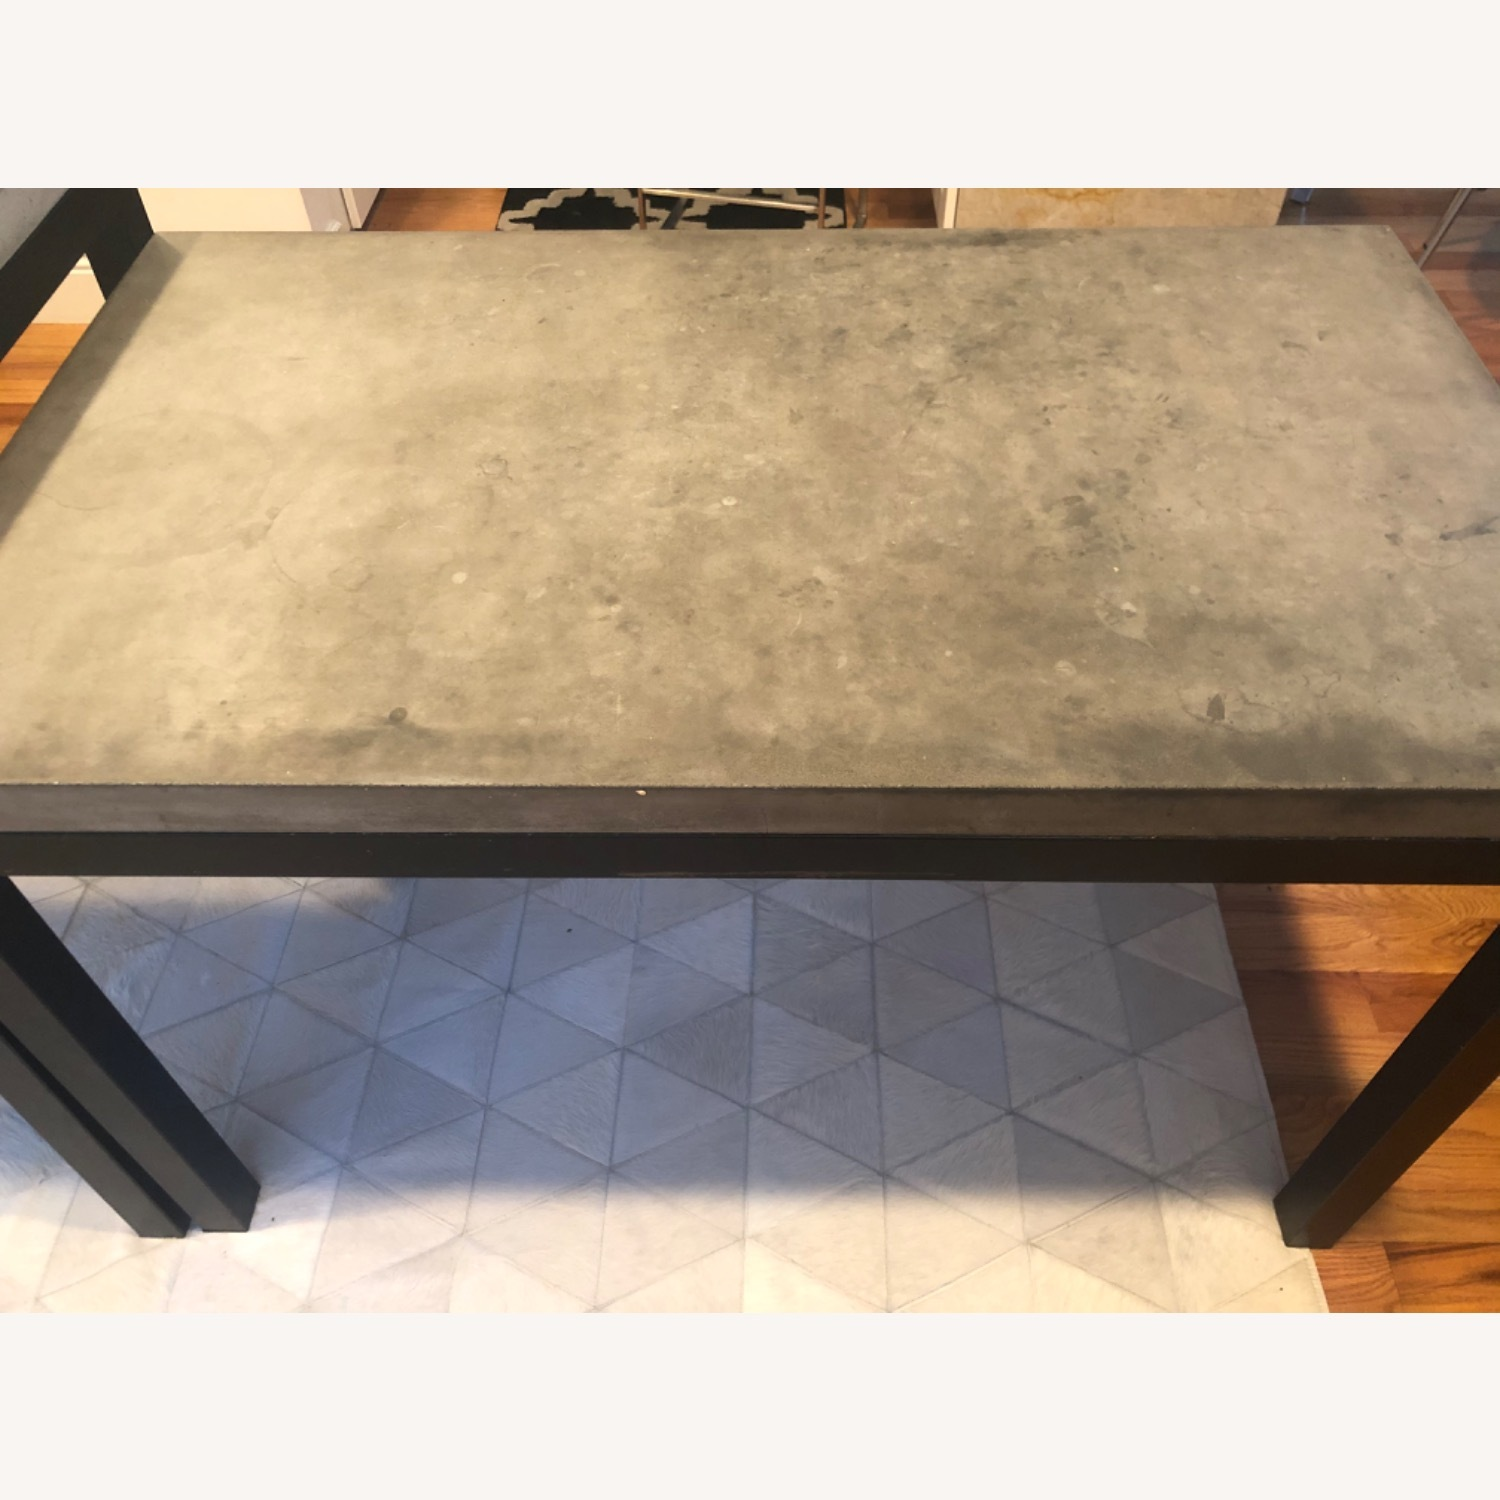 Crate & Barrel 2 Concrete Dining Tables - image-9